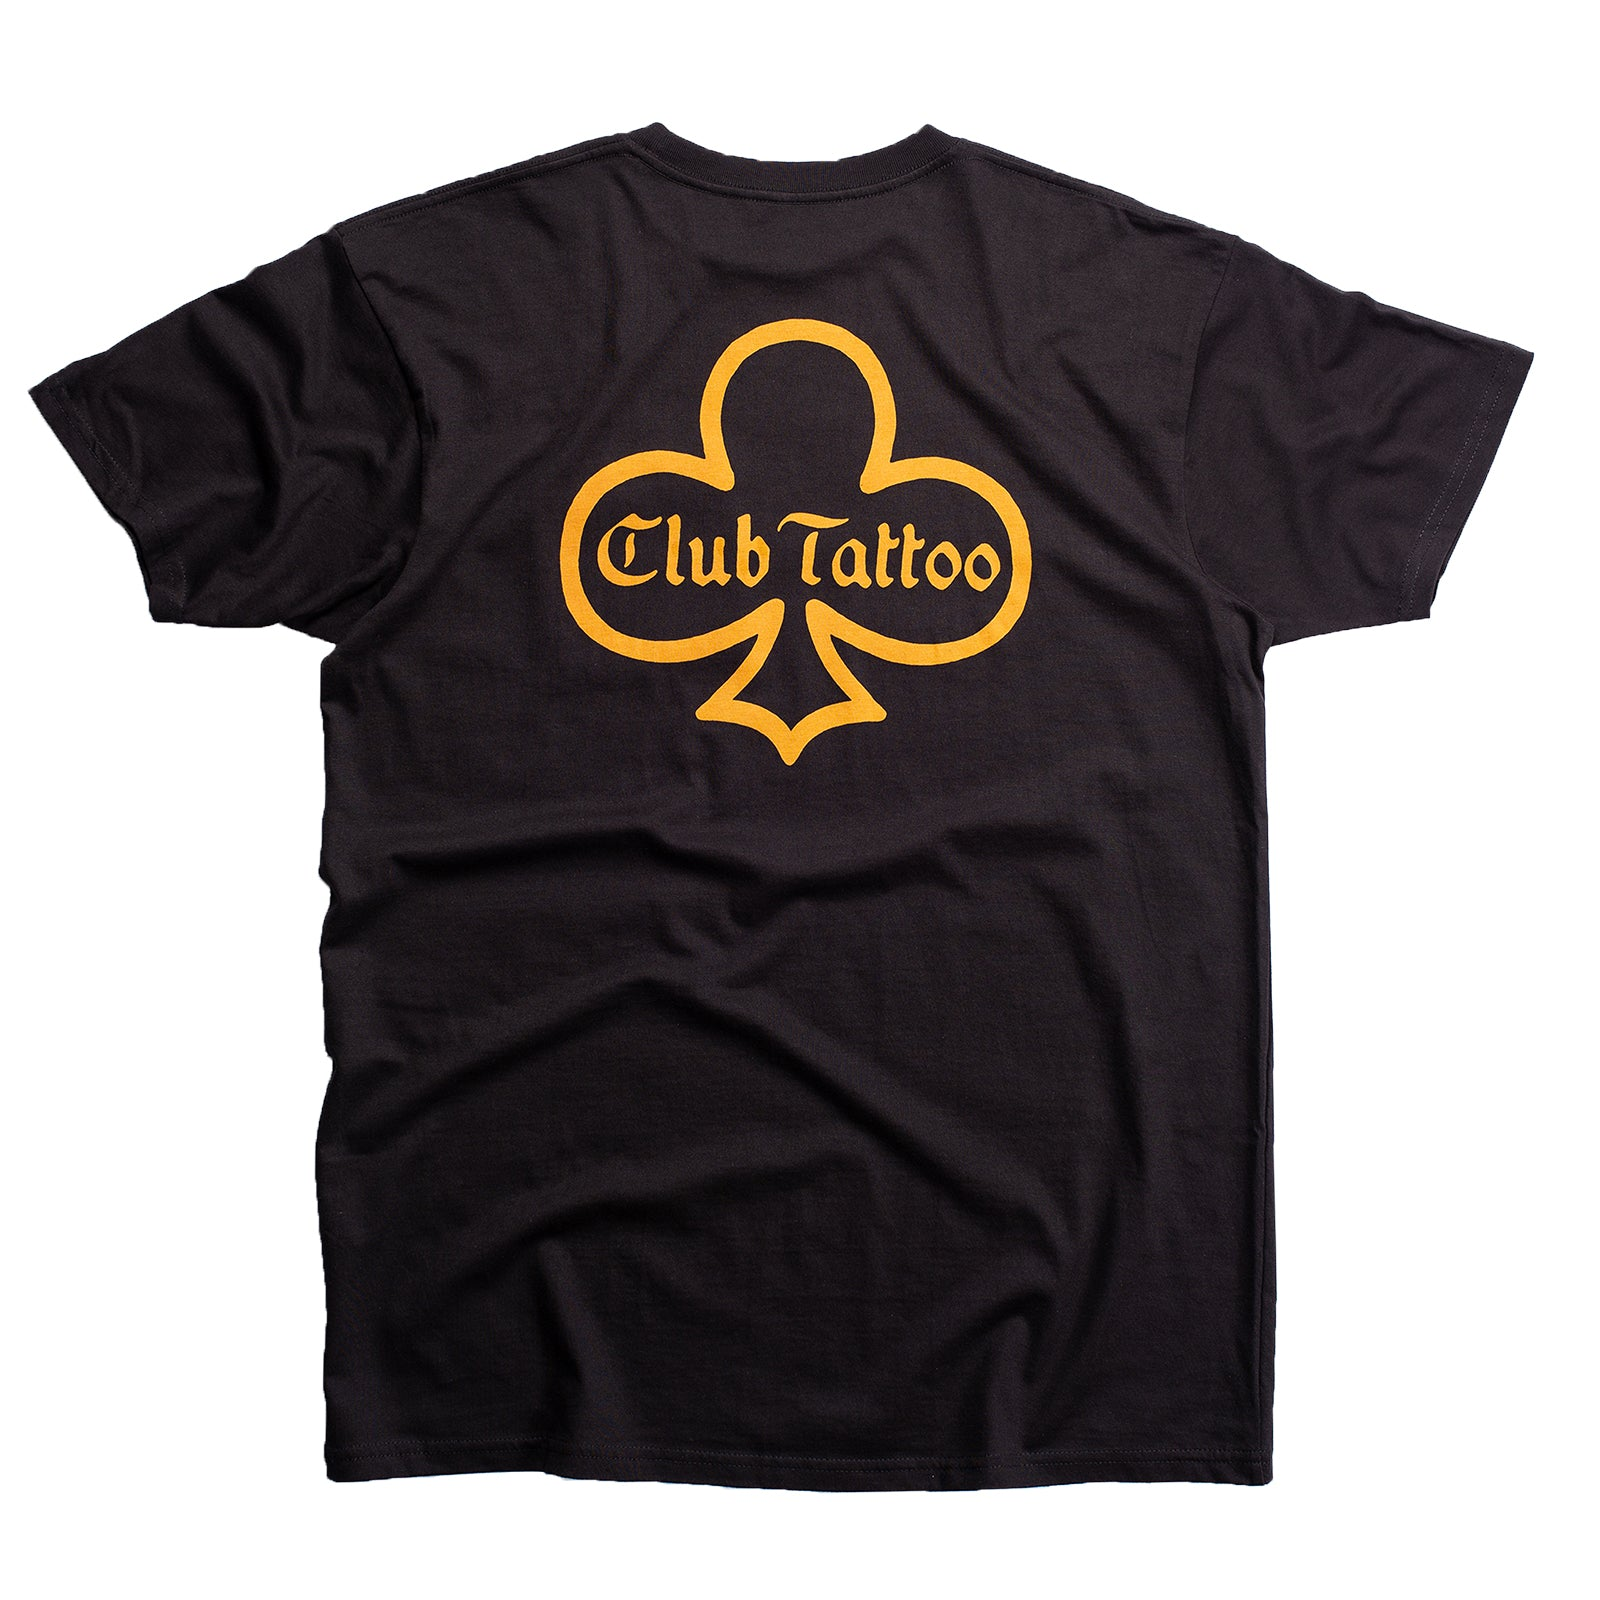 Men's Hand Drawn Tee - Club Tattoo